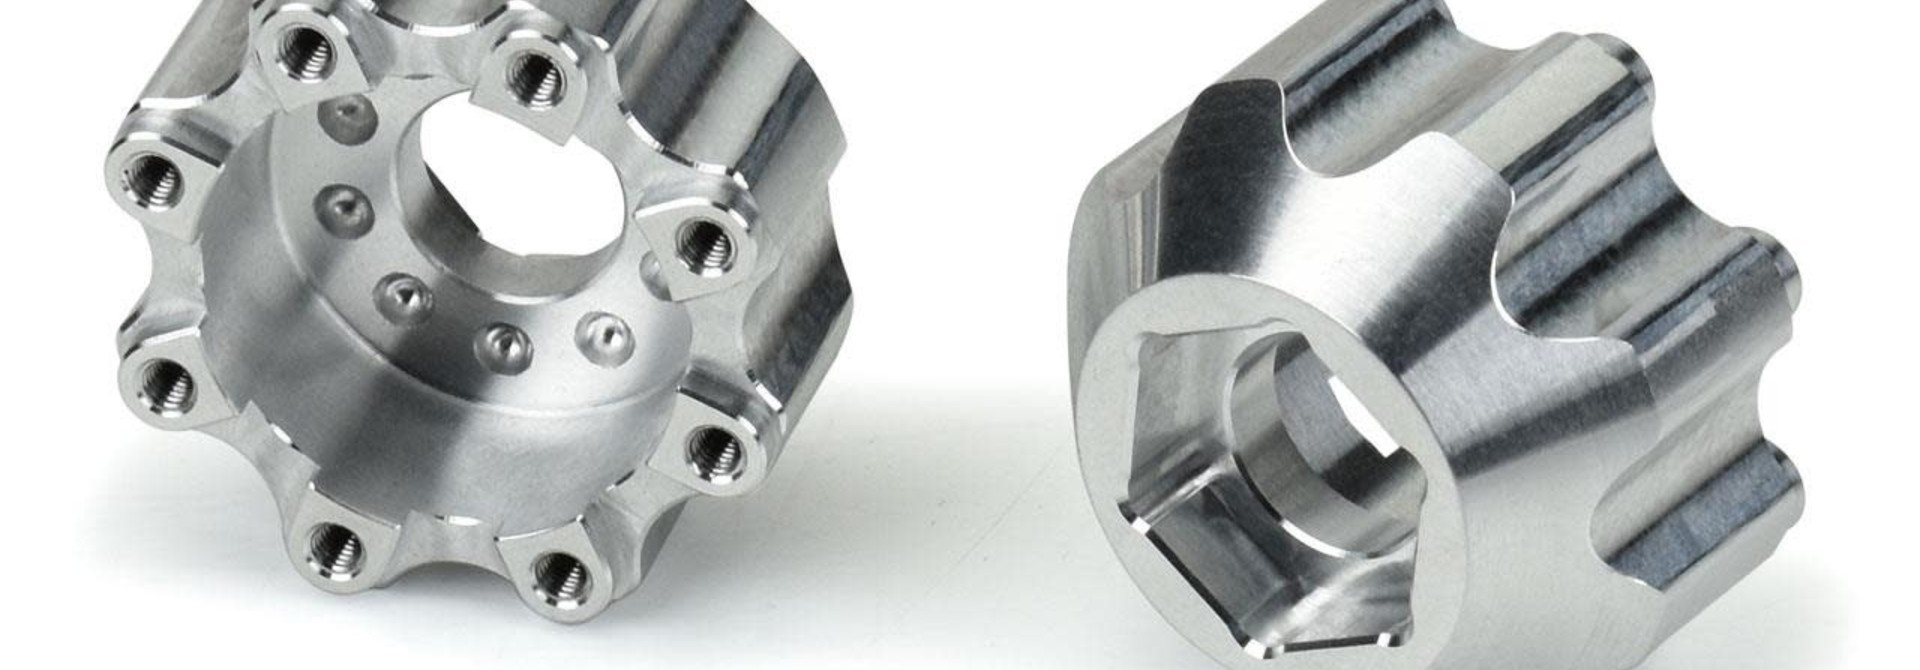 """8x32 to 17mm 1/2"""" Offset Aluminum Hex Adapters"""